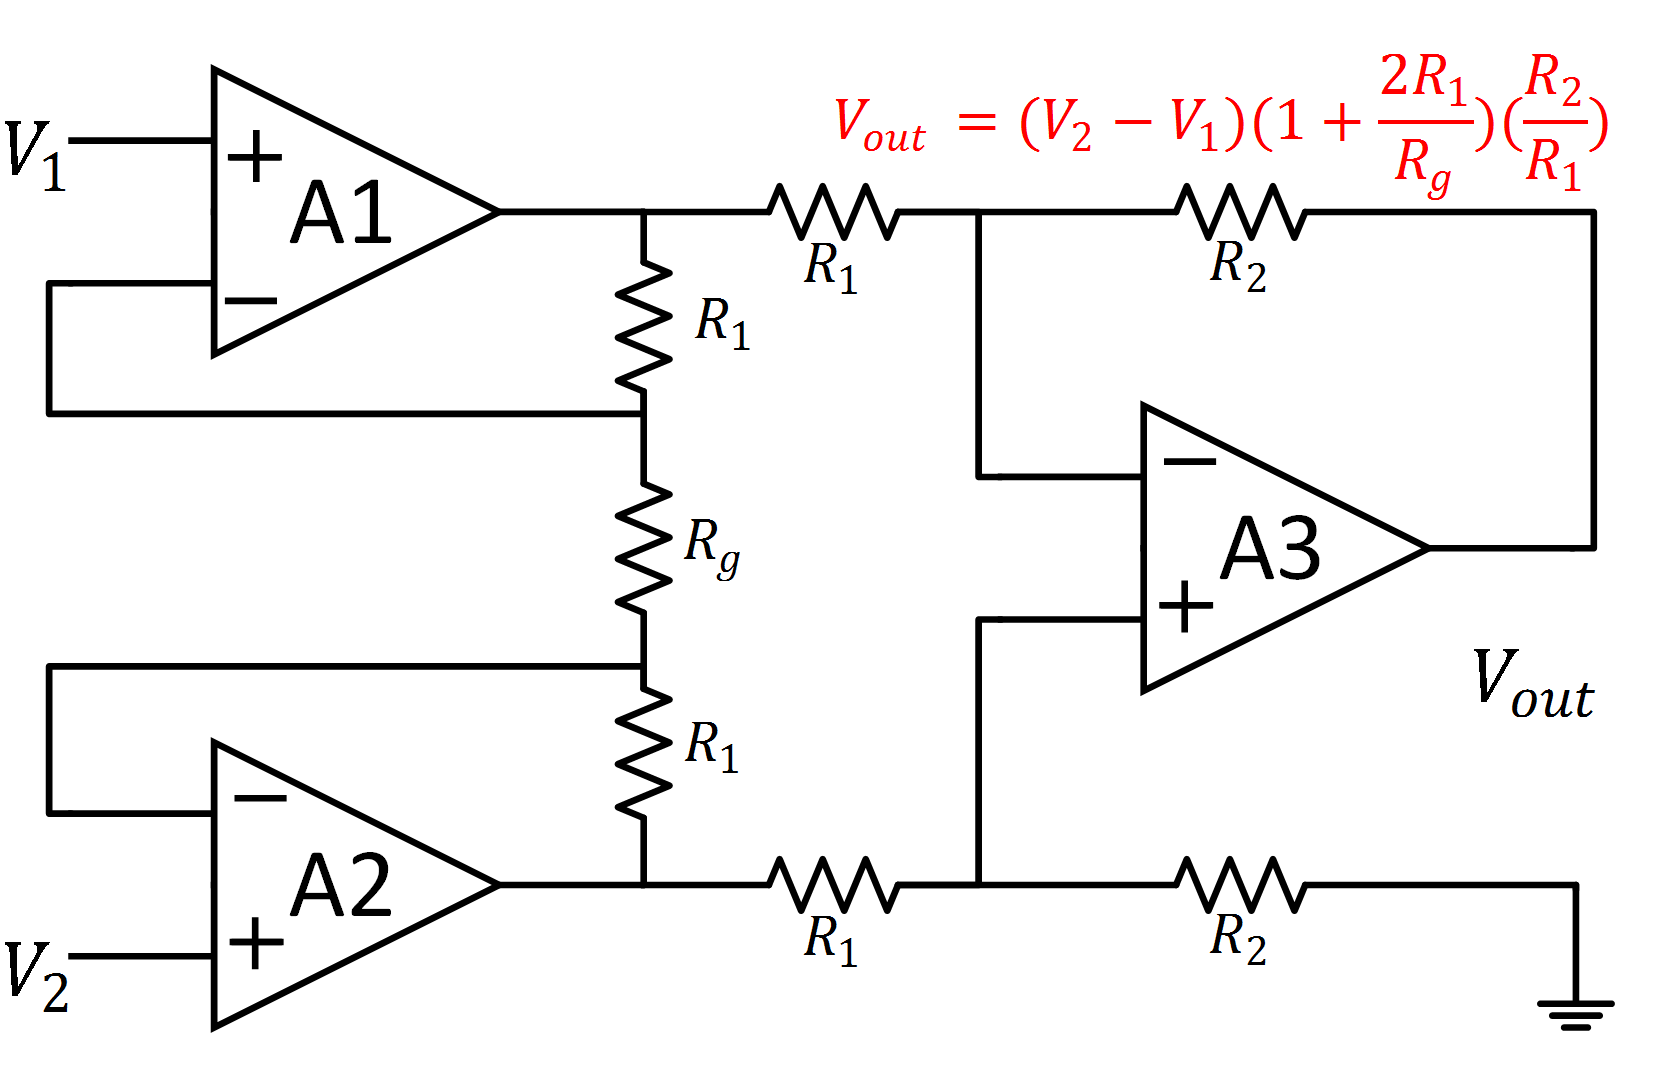 Astonishing Instrumentation Amplifier Circuit Diagram Amplifiercircuit Basic Wiring Cloud Brecesaoduqqnet